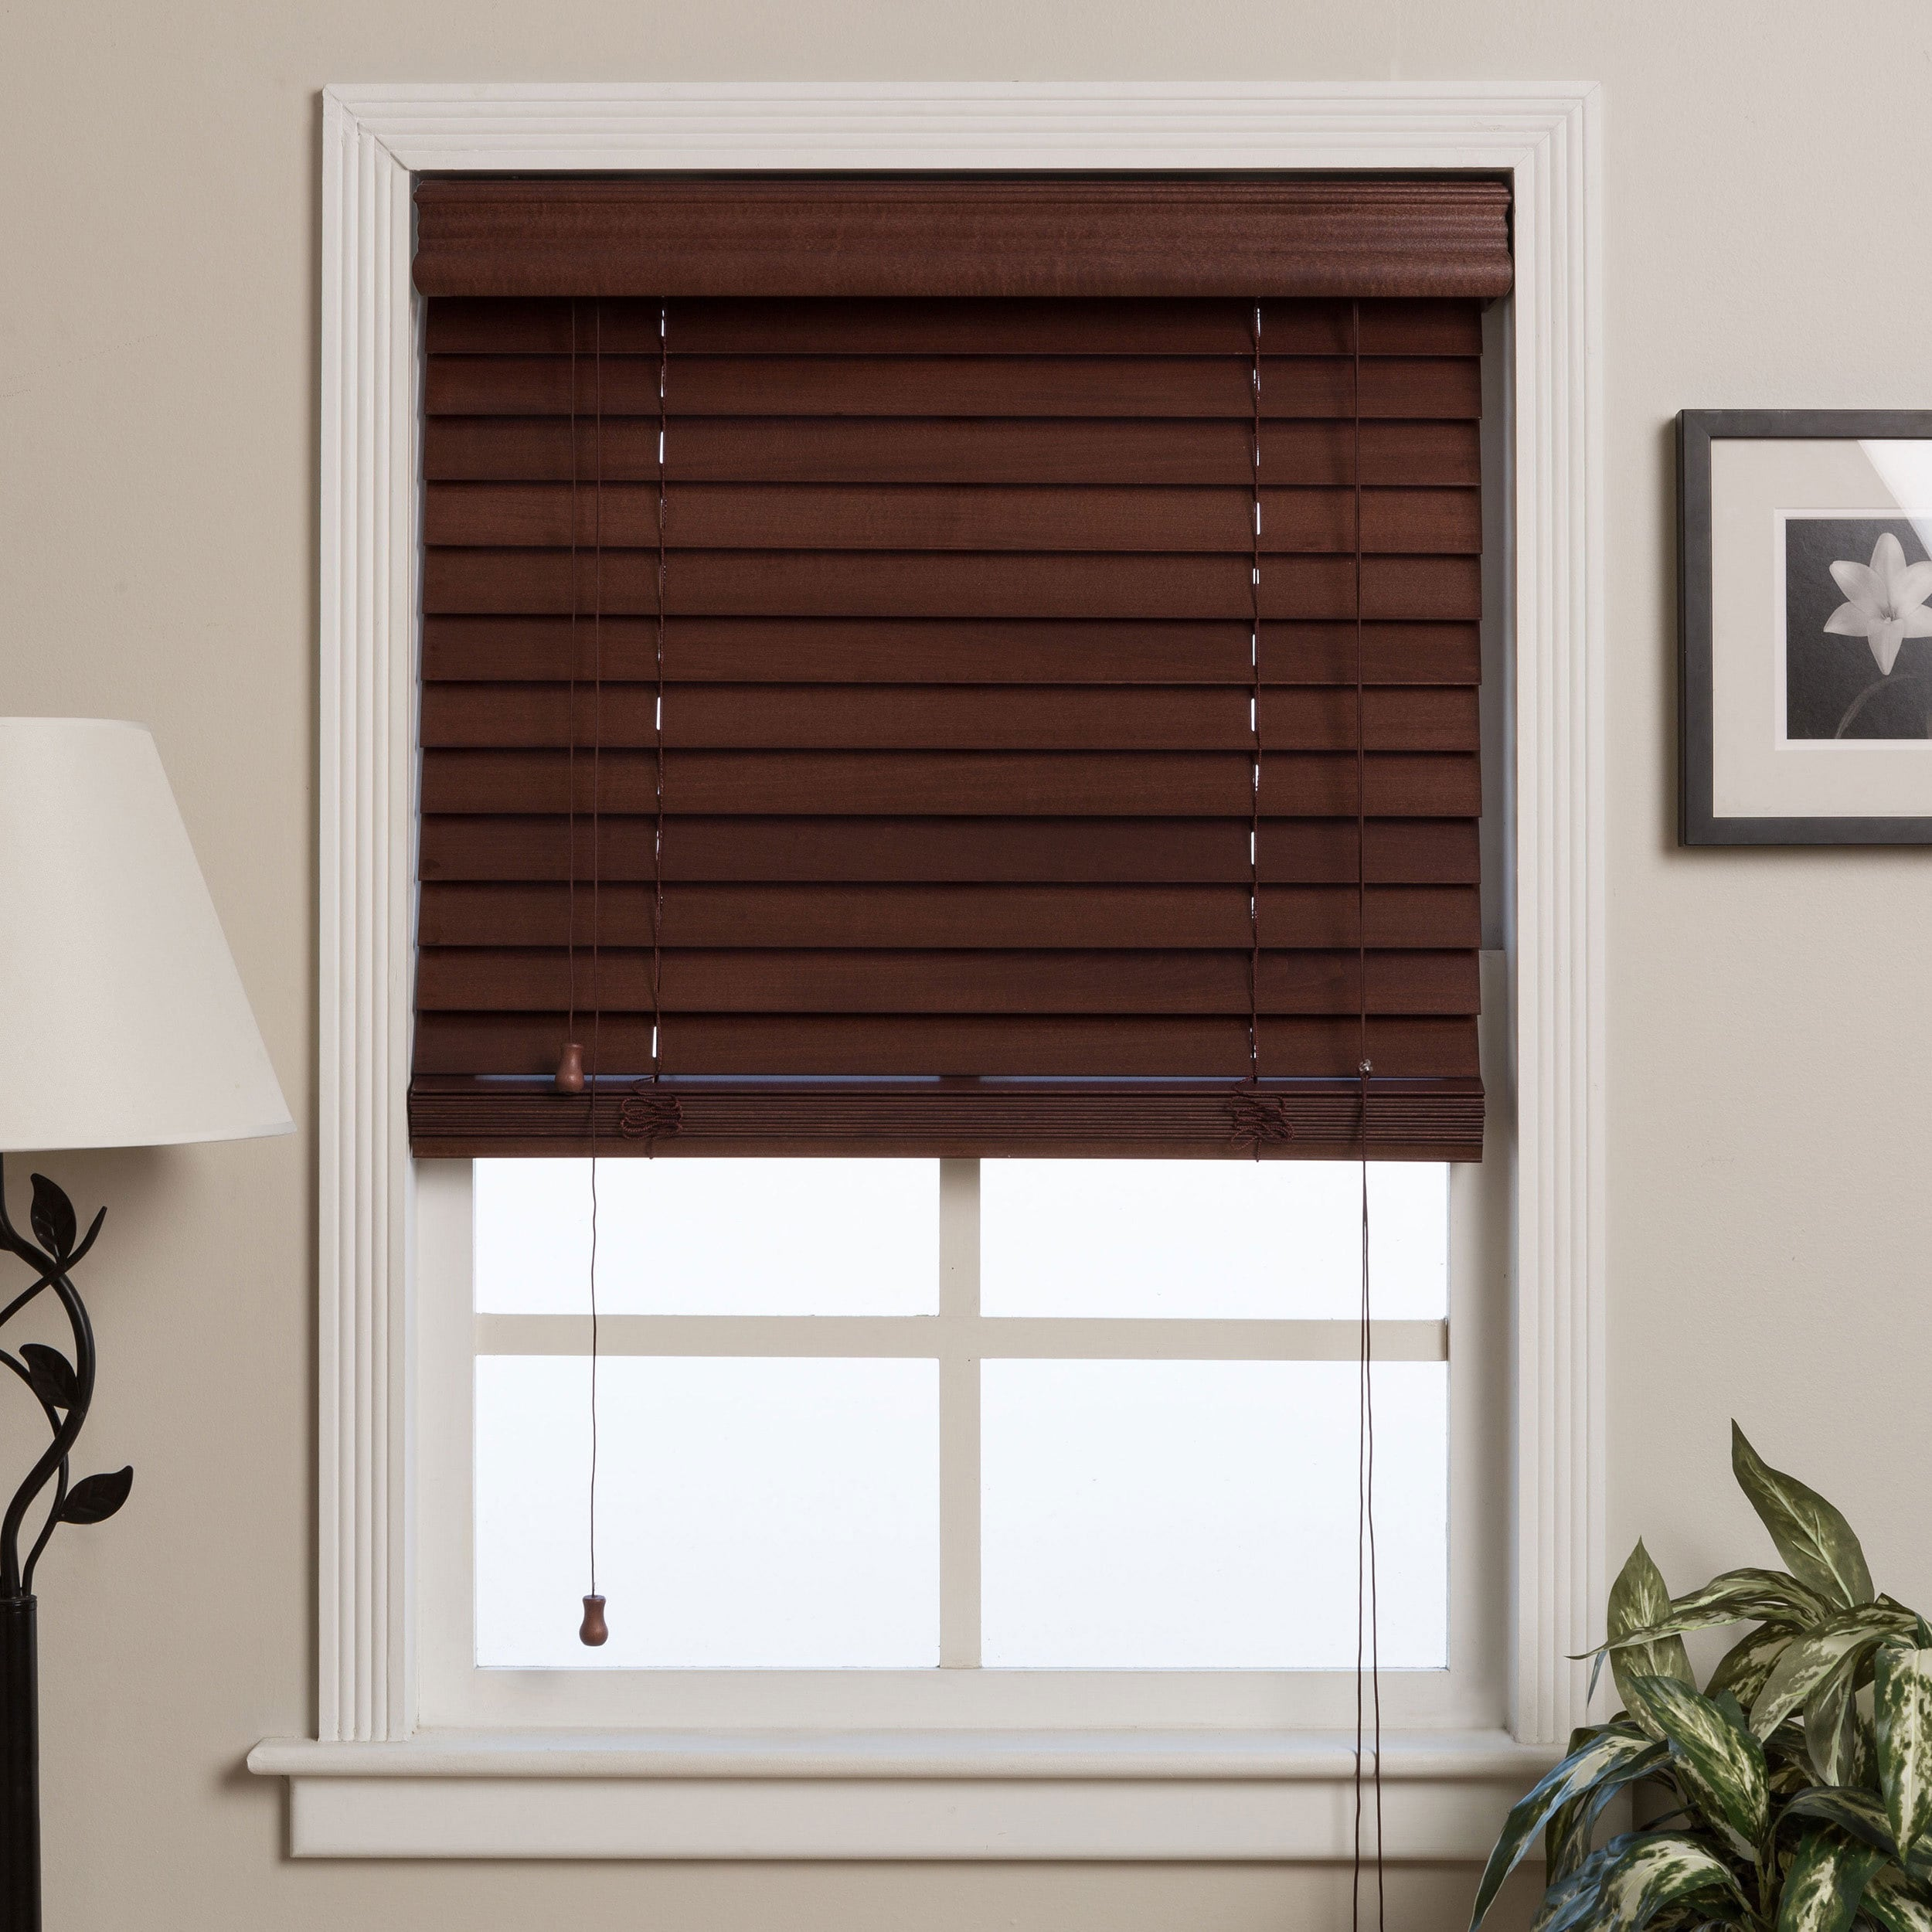 size treatments window of blinds sizes lowes sale blind mini vinyl ideas overstock and medium temporary bamboo vertical paper arched windows interiors shades